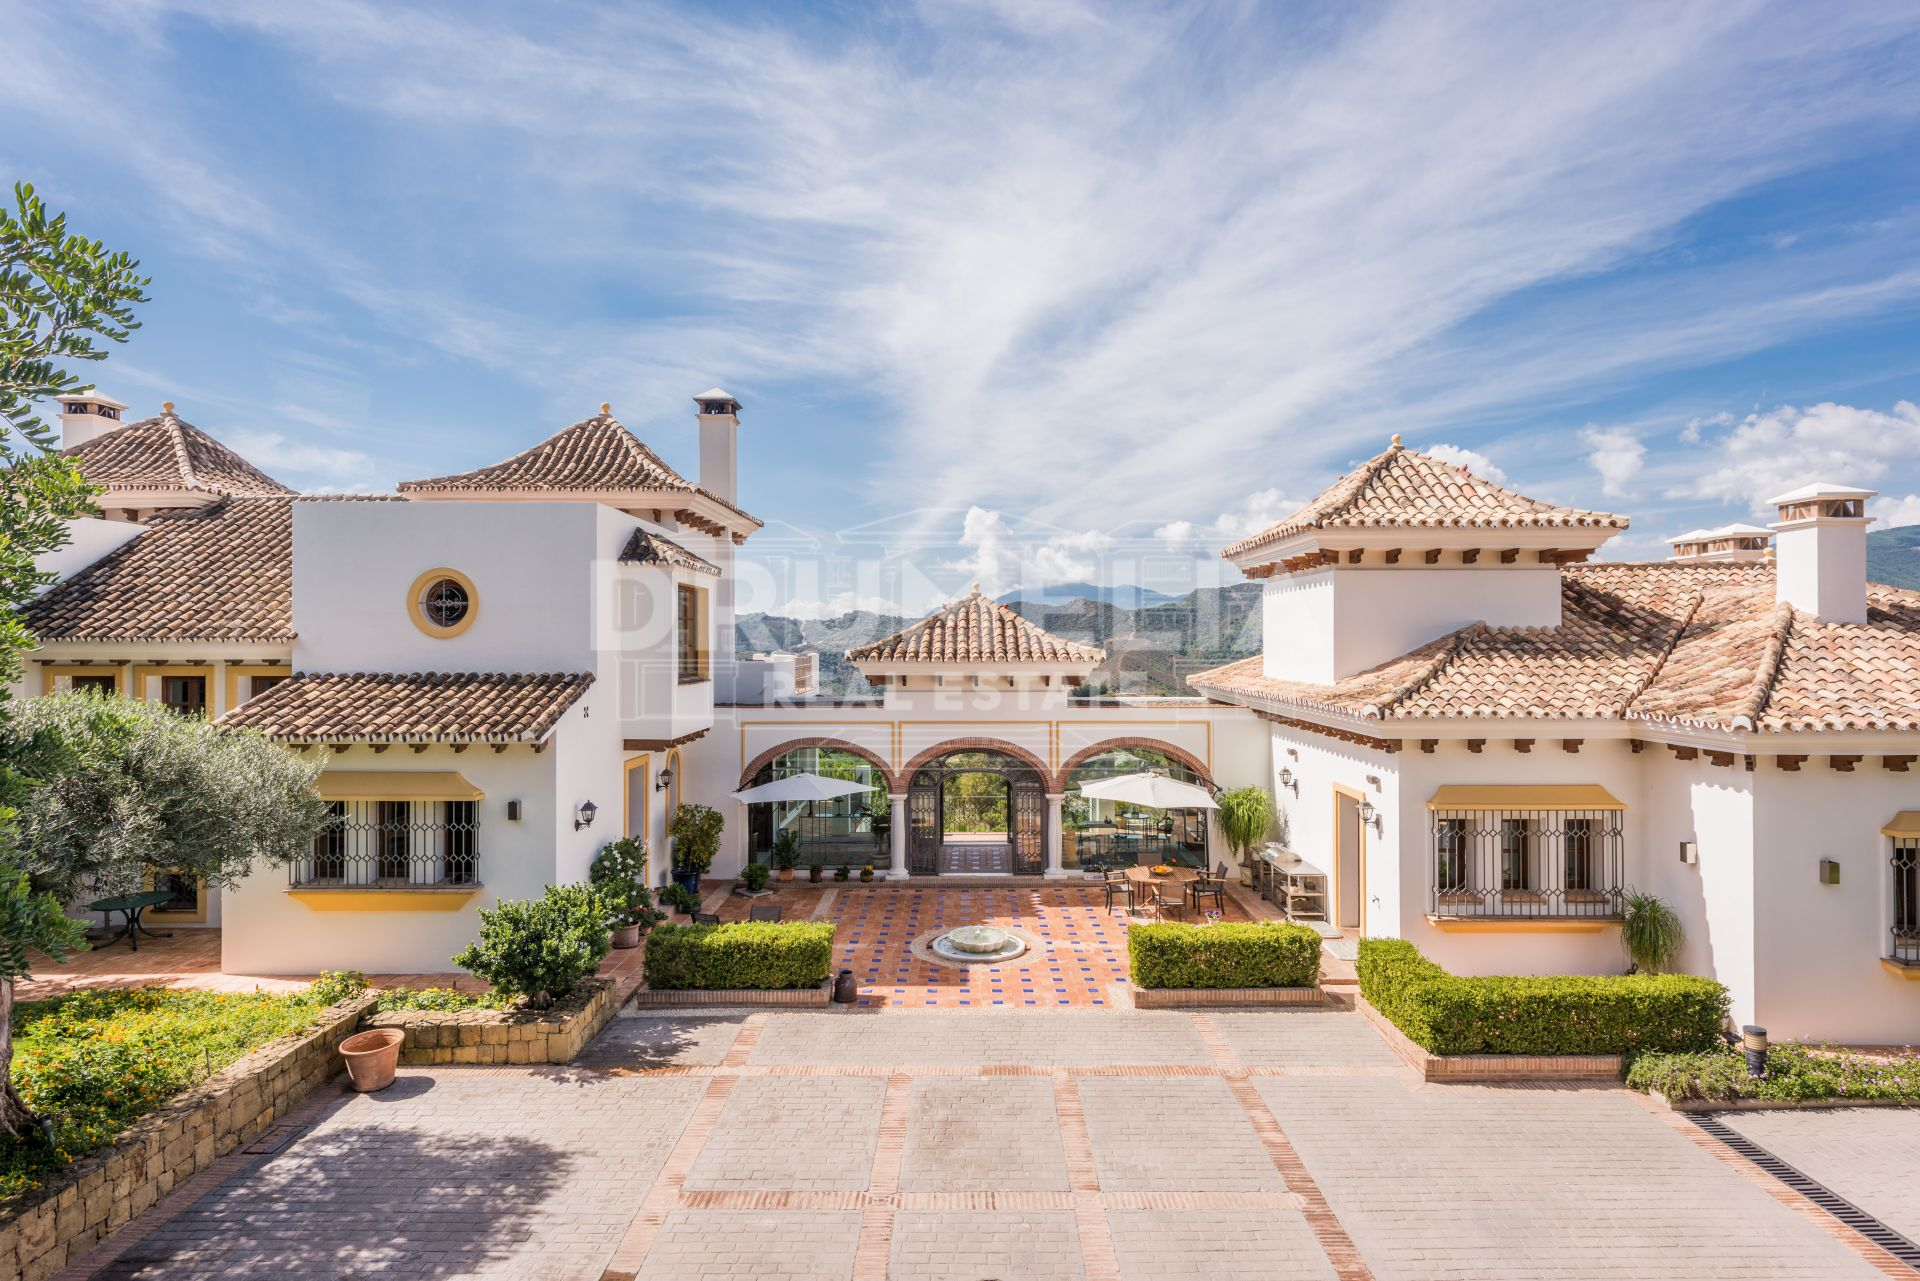 Benahavis, Fabulous Mediterranean Mansion in La Zagaleta, Benahavis